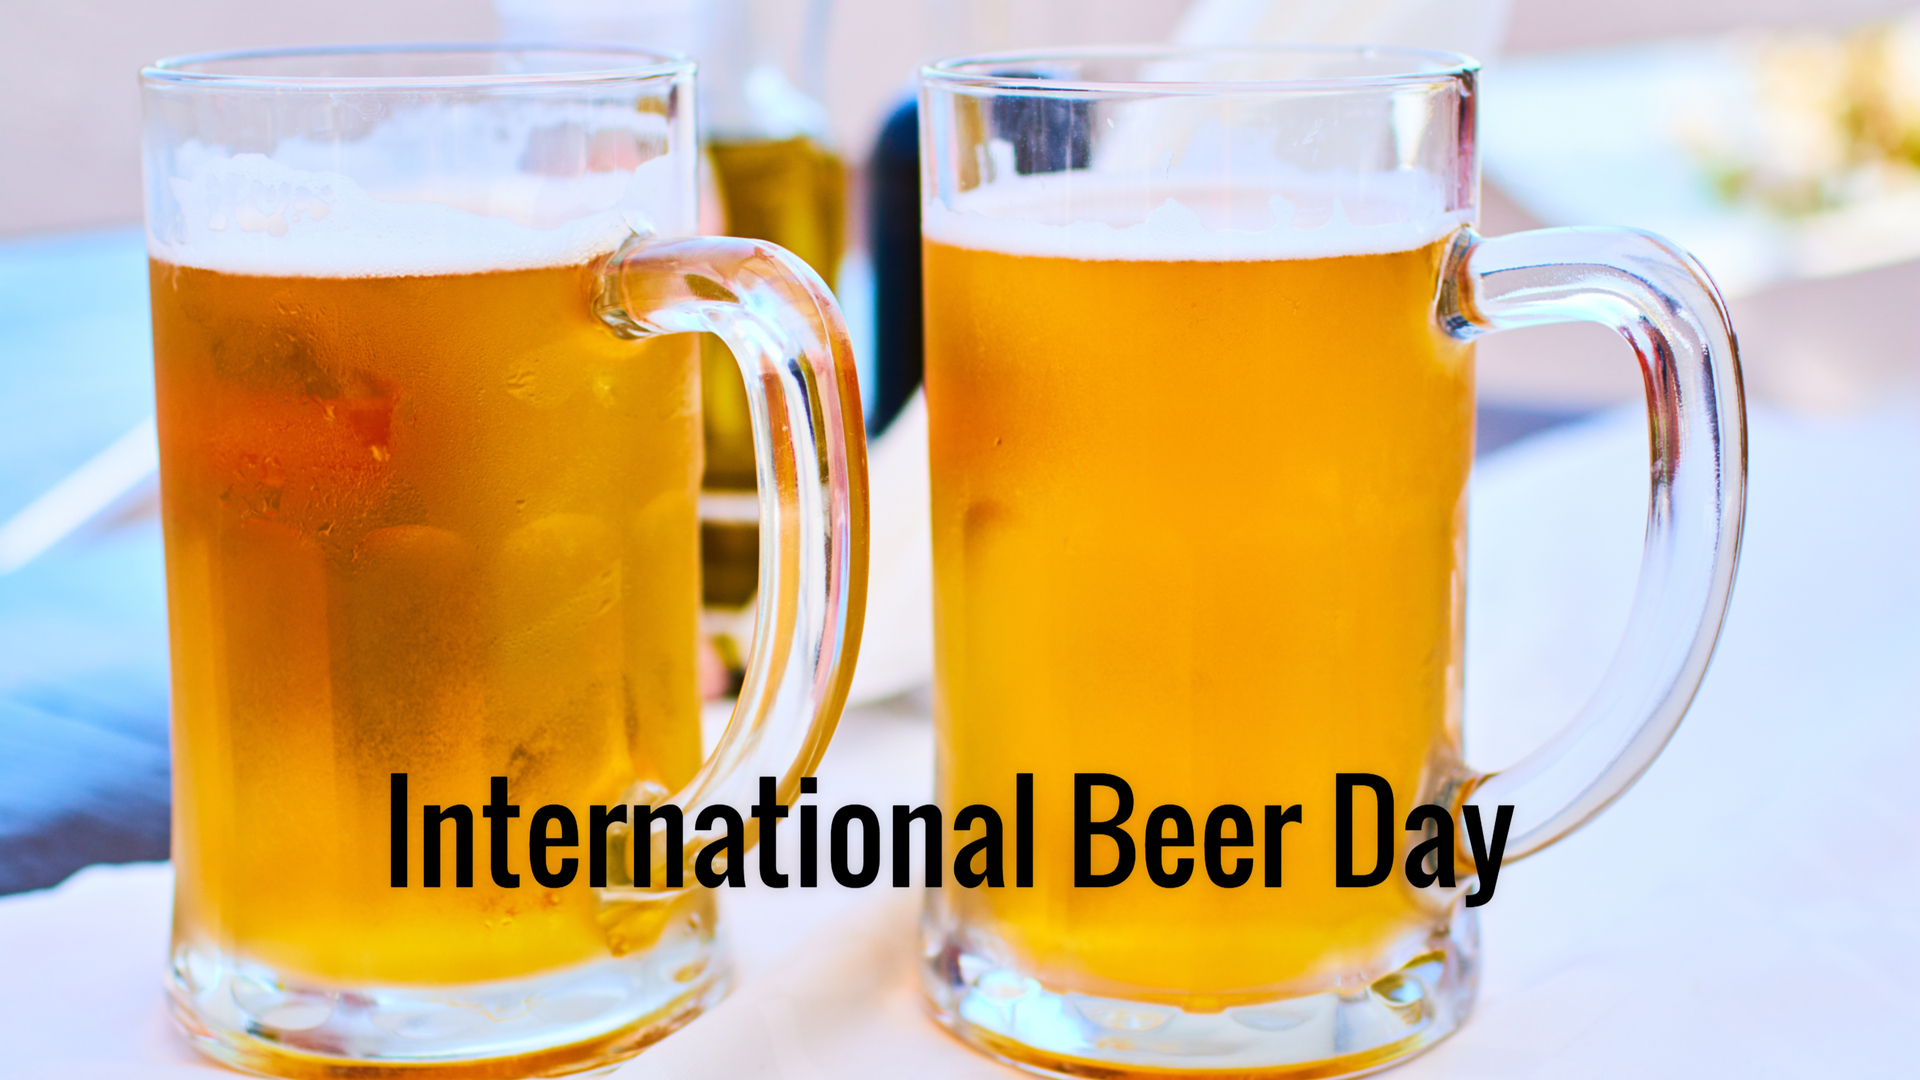 International Beer Day In 2021 2022 When Where Why How Is Celebrated